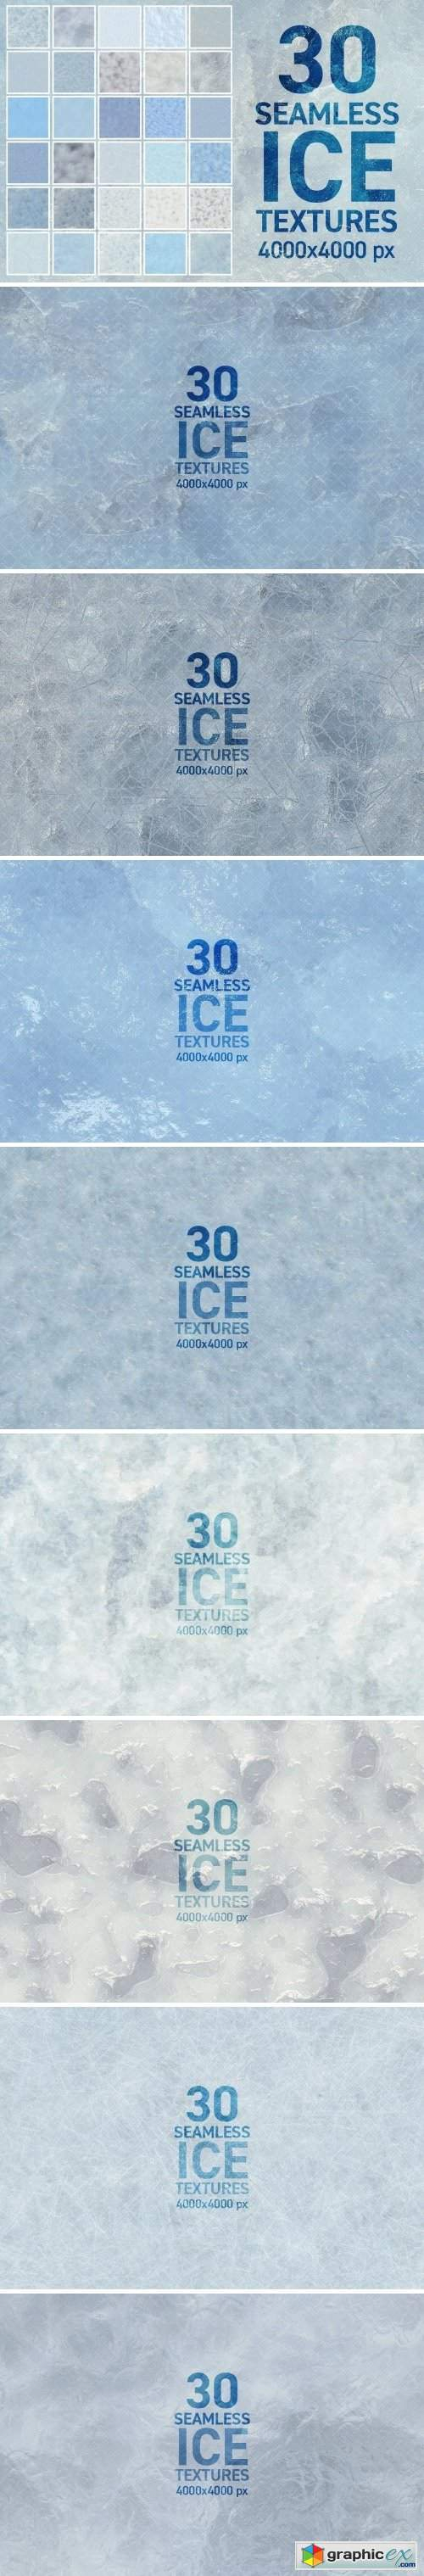 30 Seamless Ice Textures